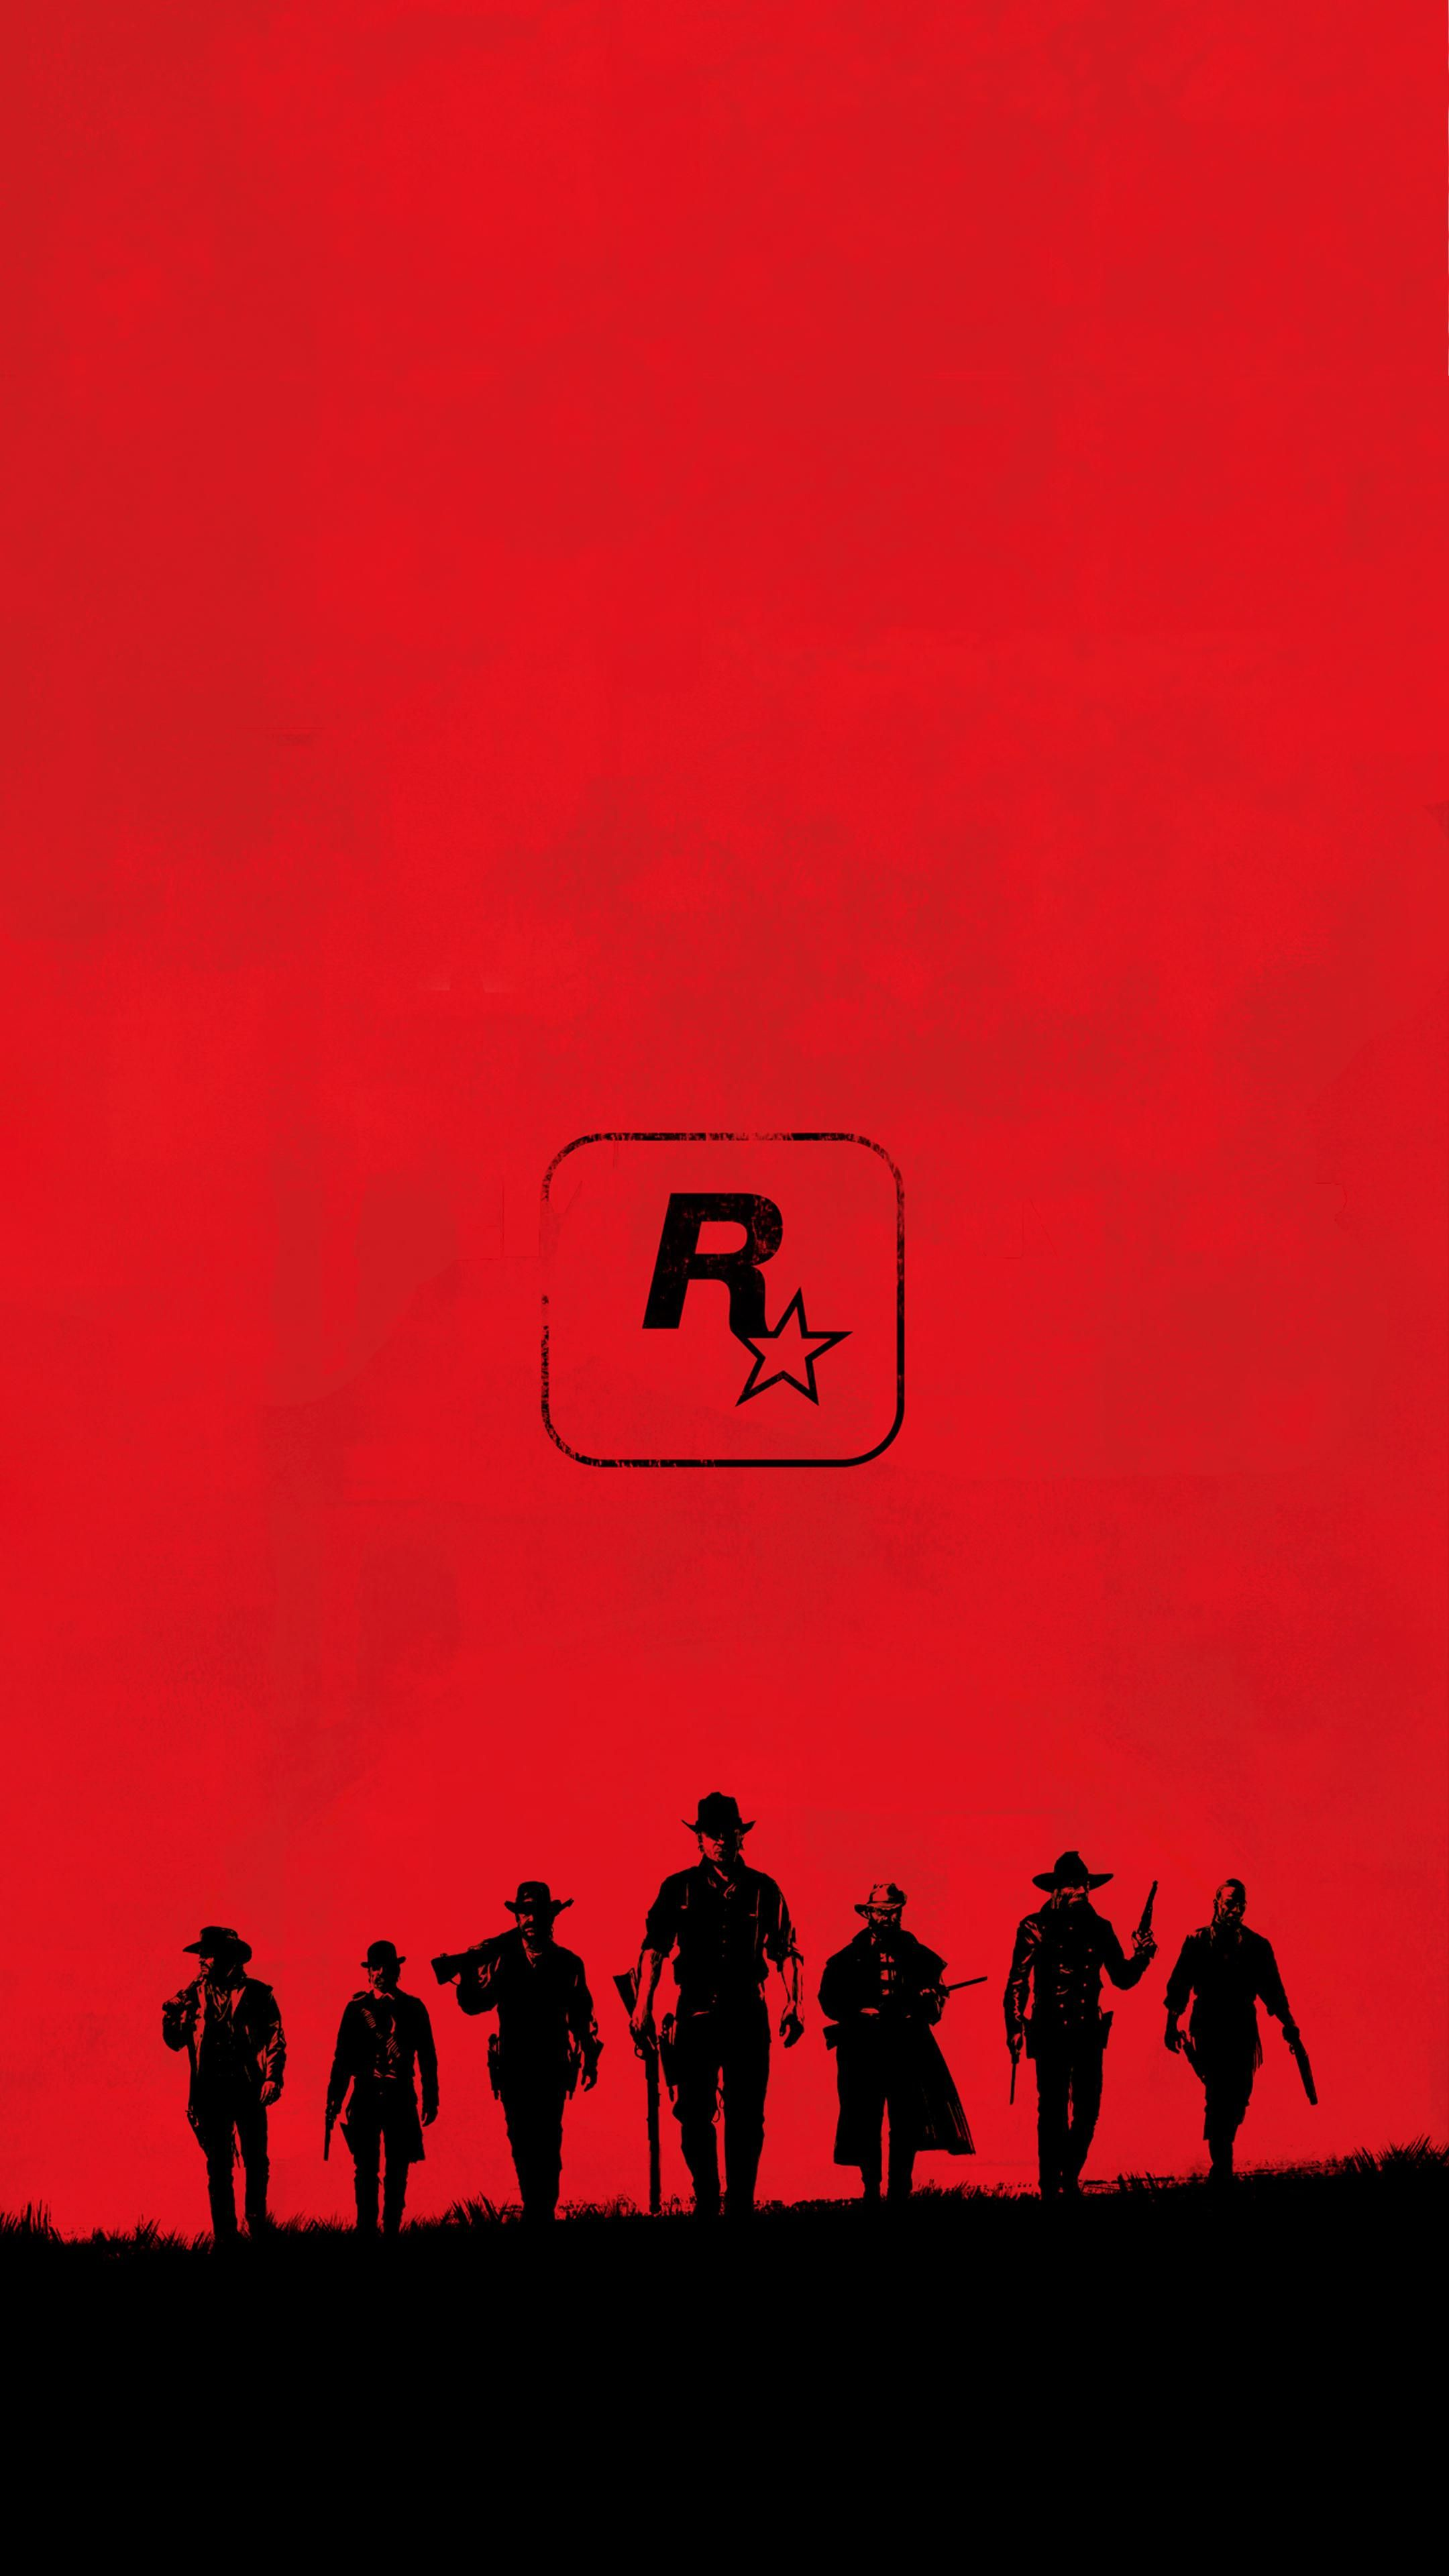 Rdr2 Cell Phone Wallpaper Red Dead Redemption Artwork Red Dead Redemption 1 Red Dead Redemption